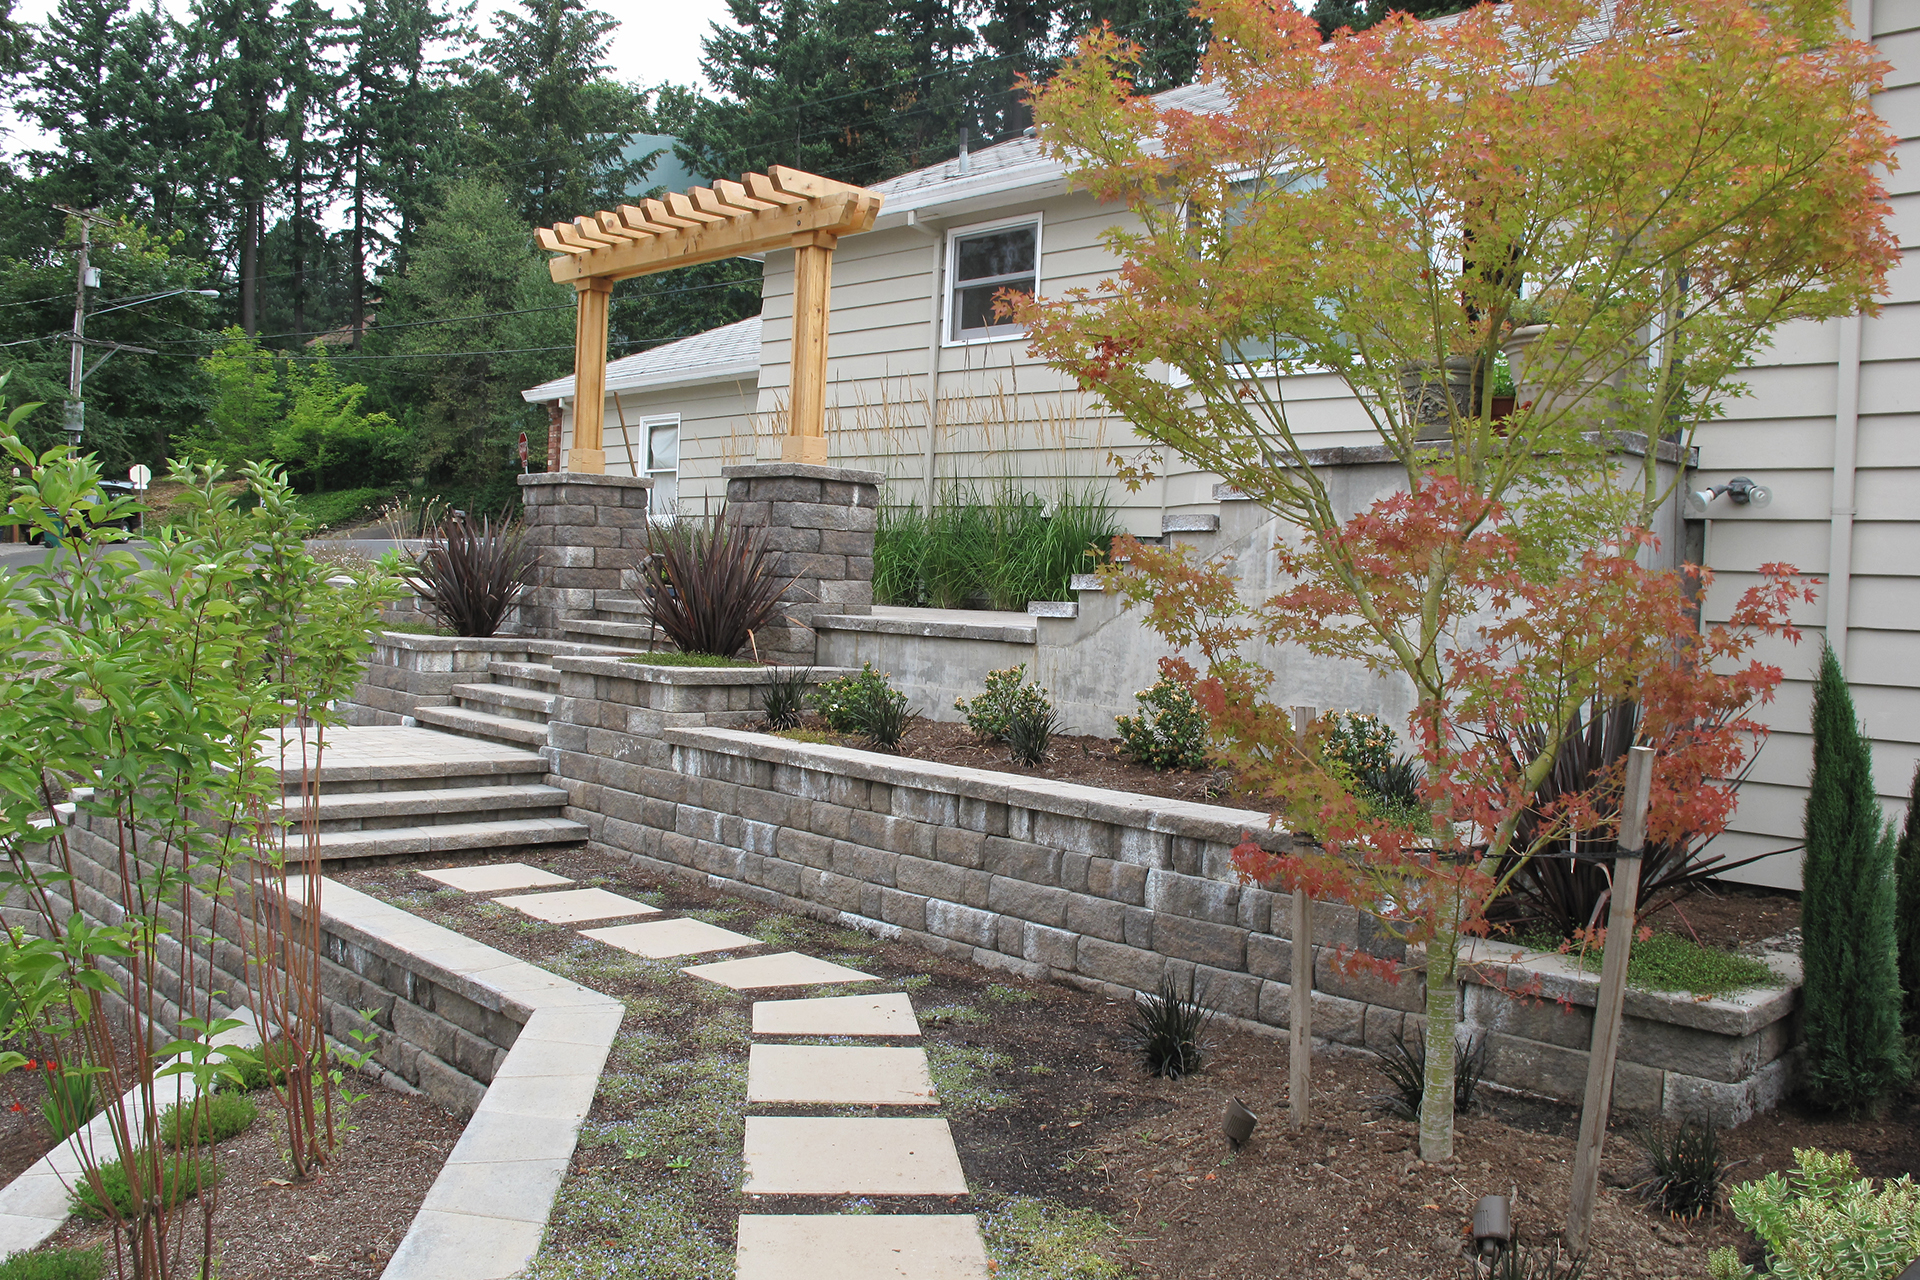 Construct a Metal Retaining Walls in Simple Ways